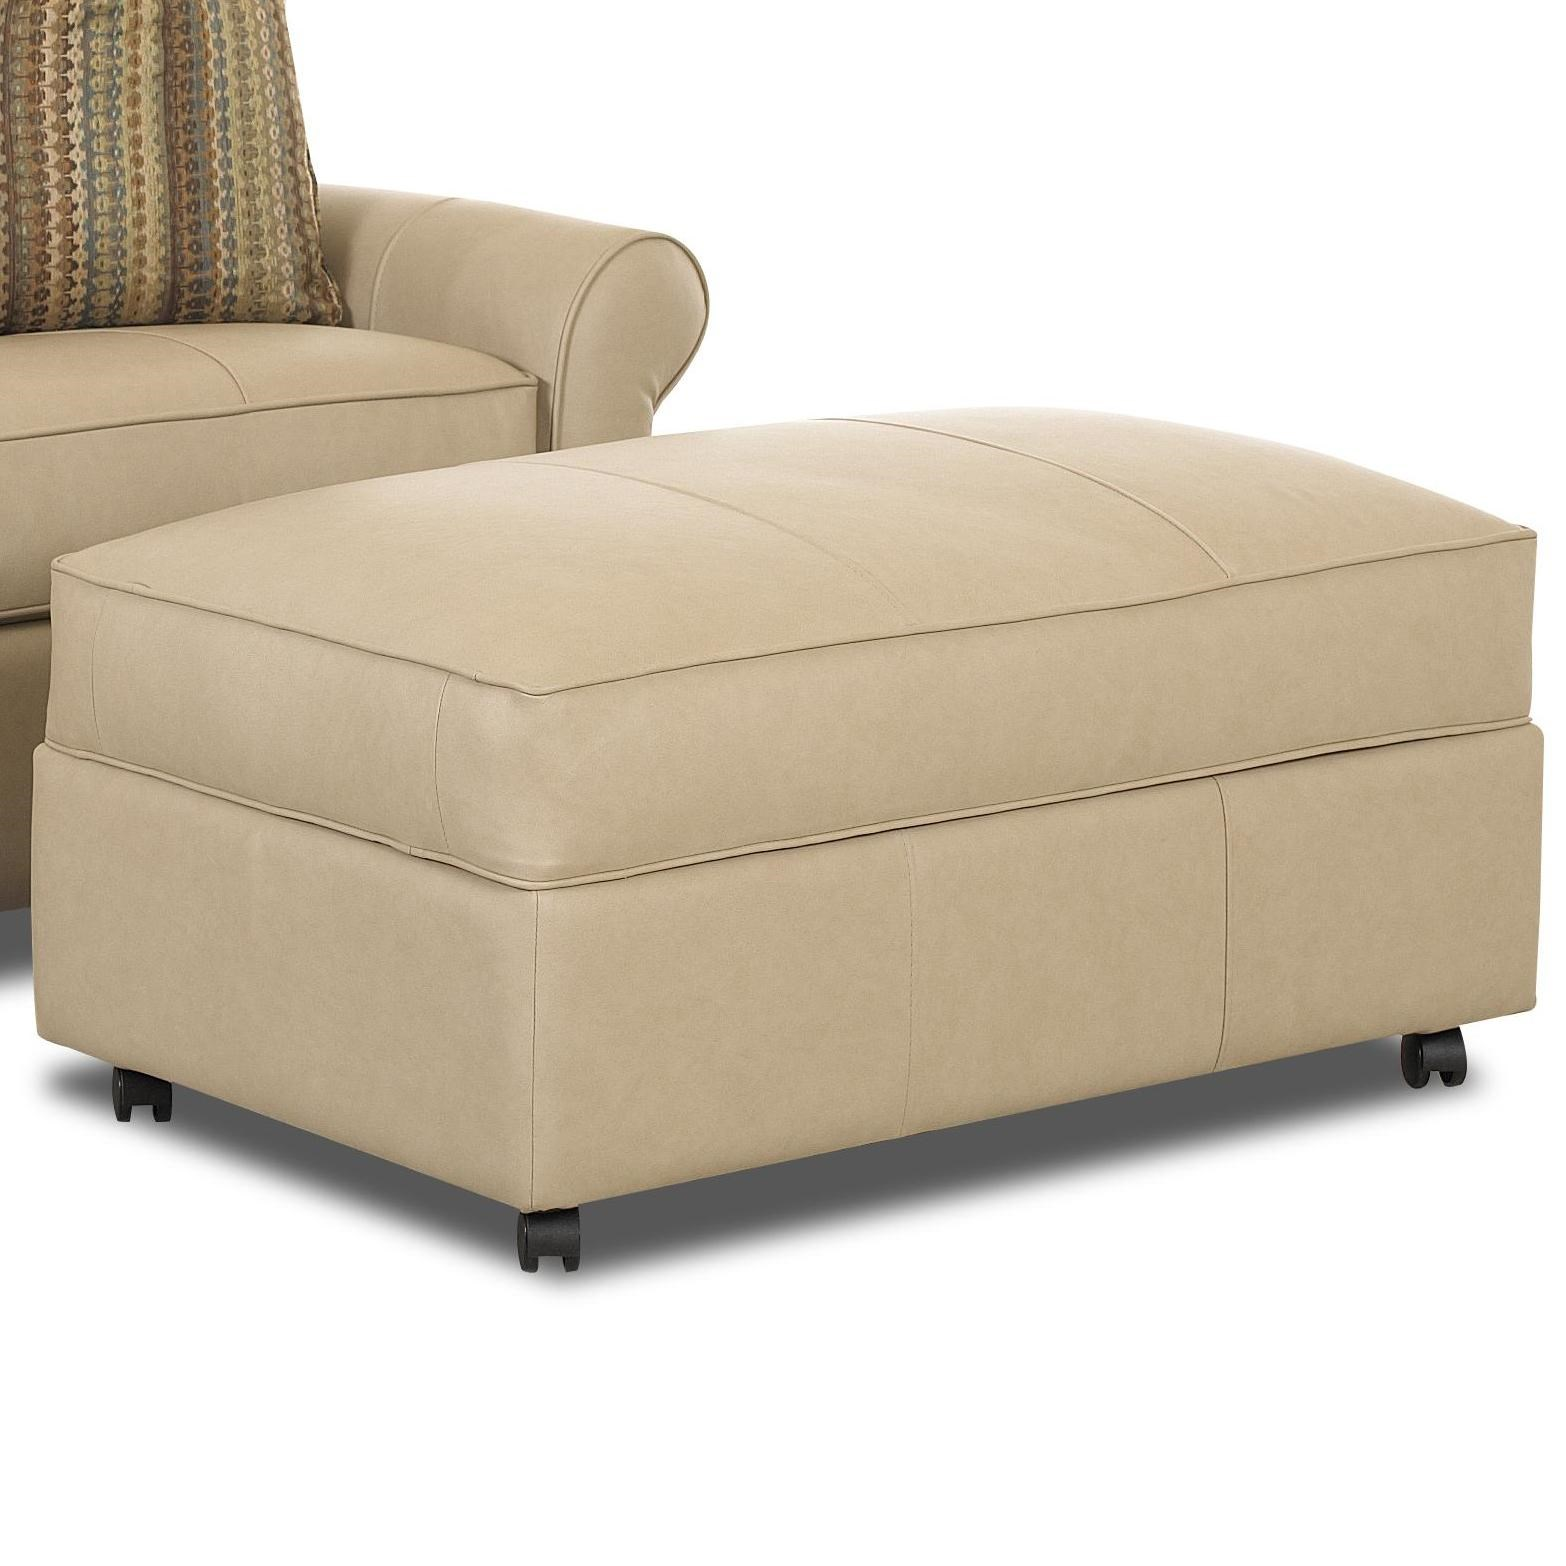 Klaussner Mayhew Large Rectangular Storage Ottoman With Casters